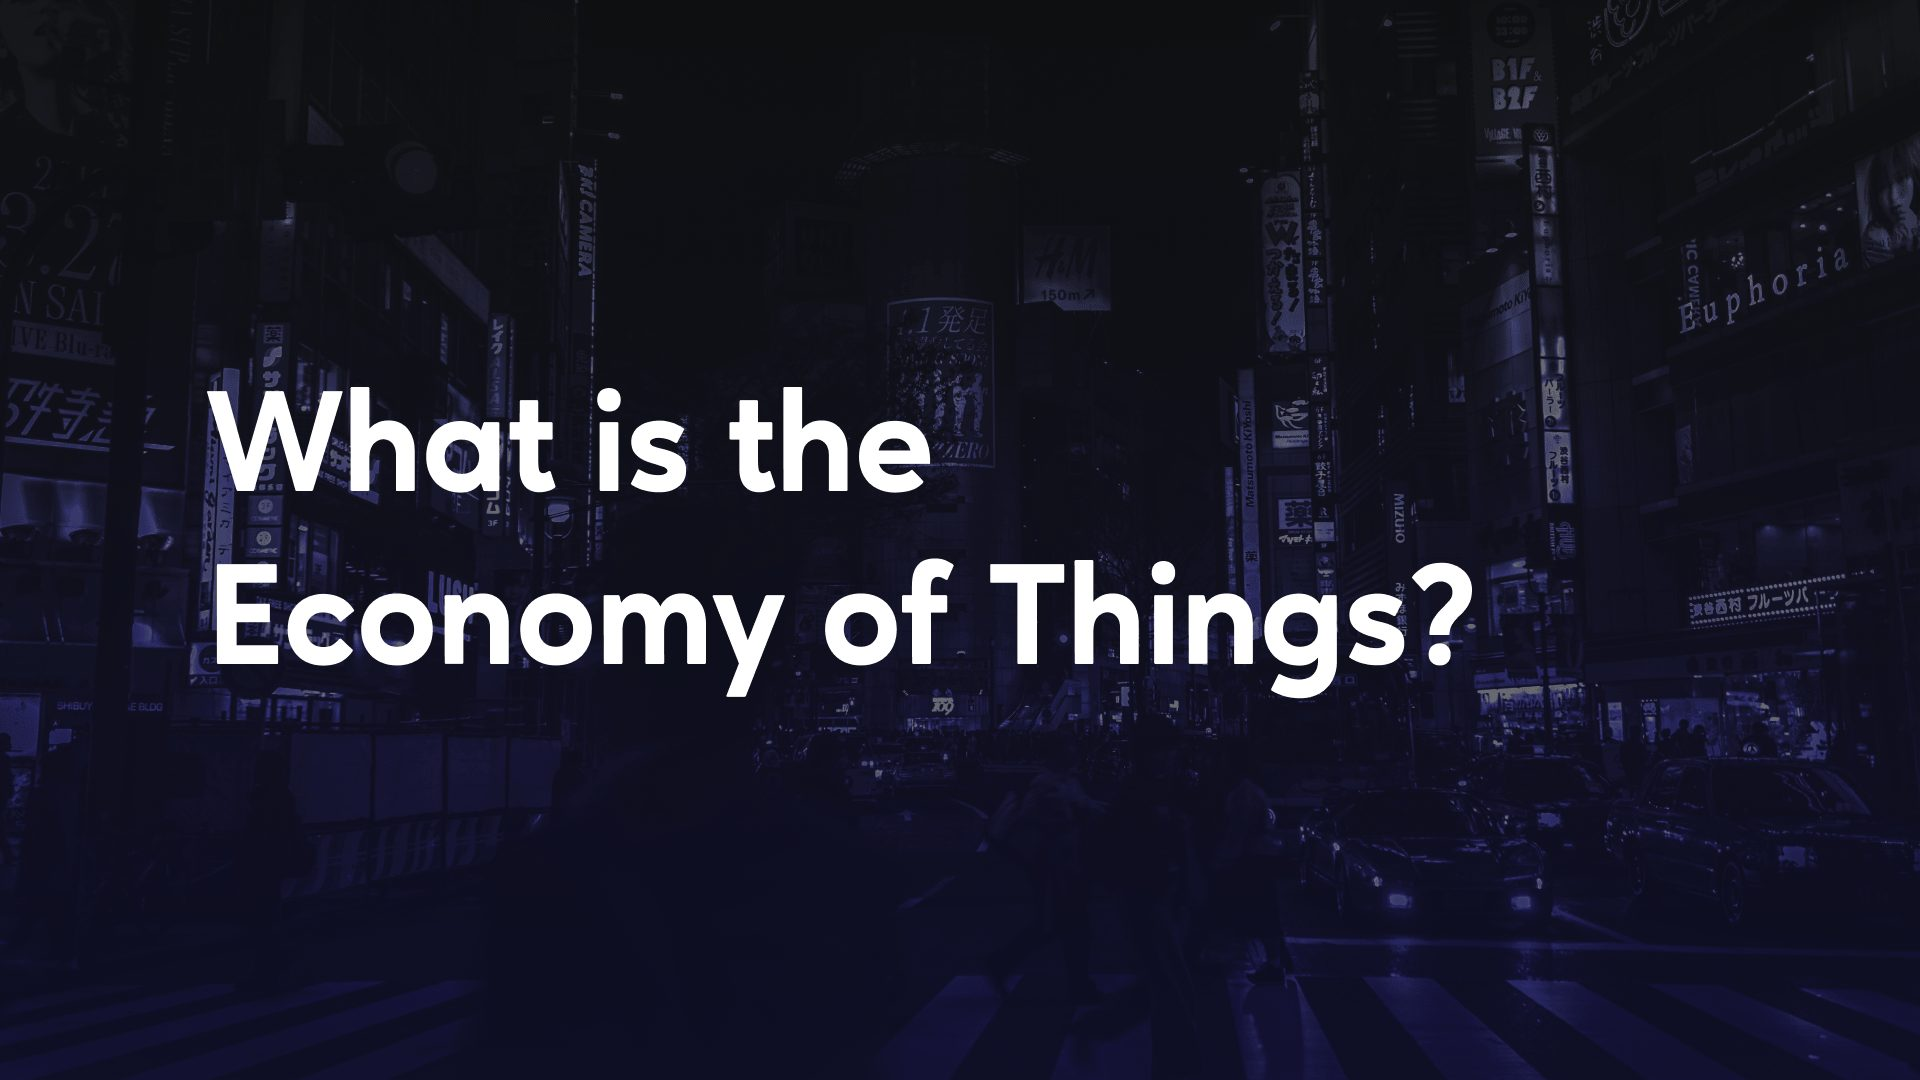 What is the Economy of Things?